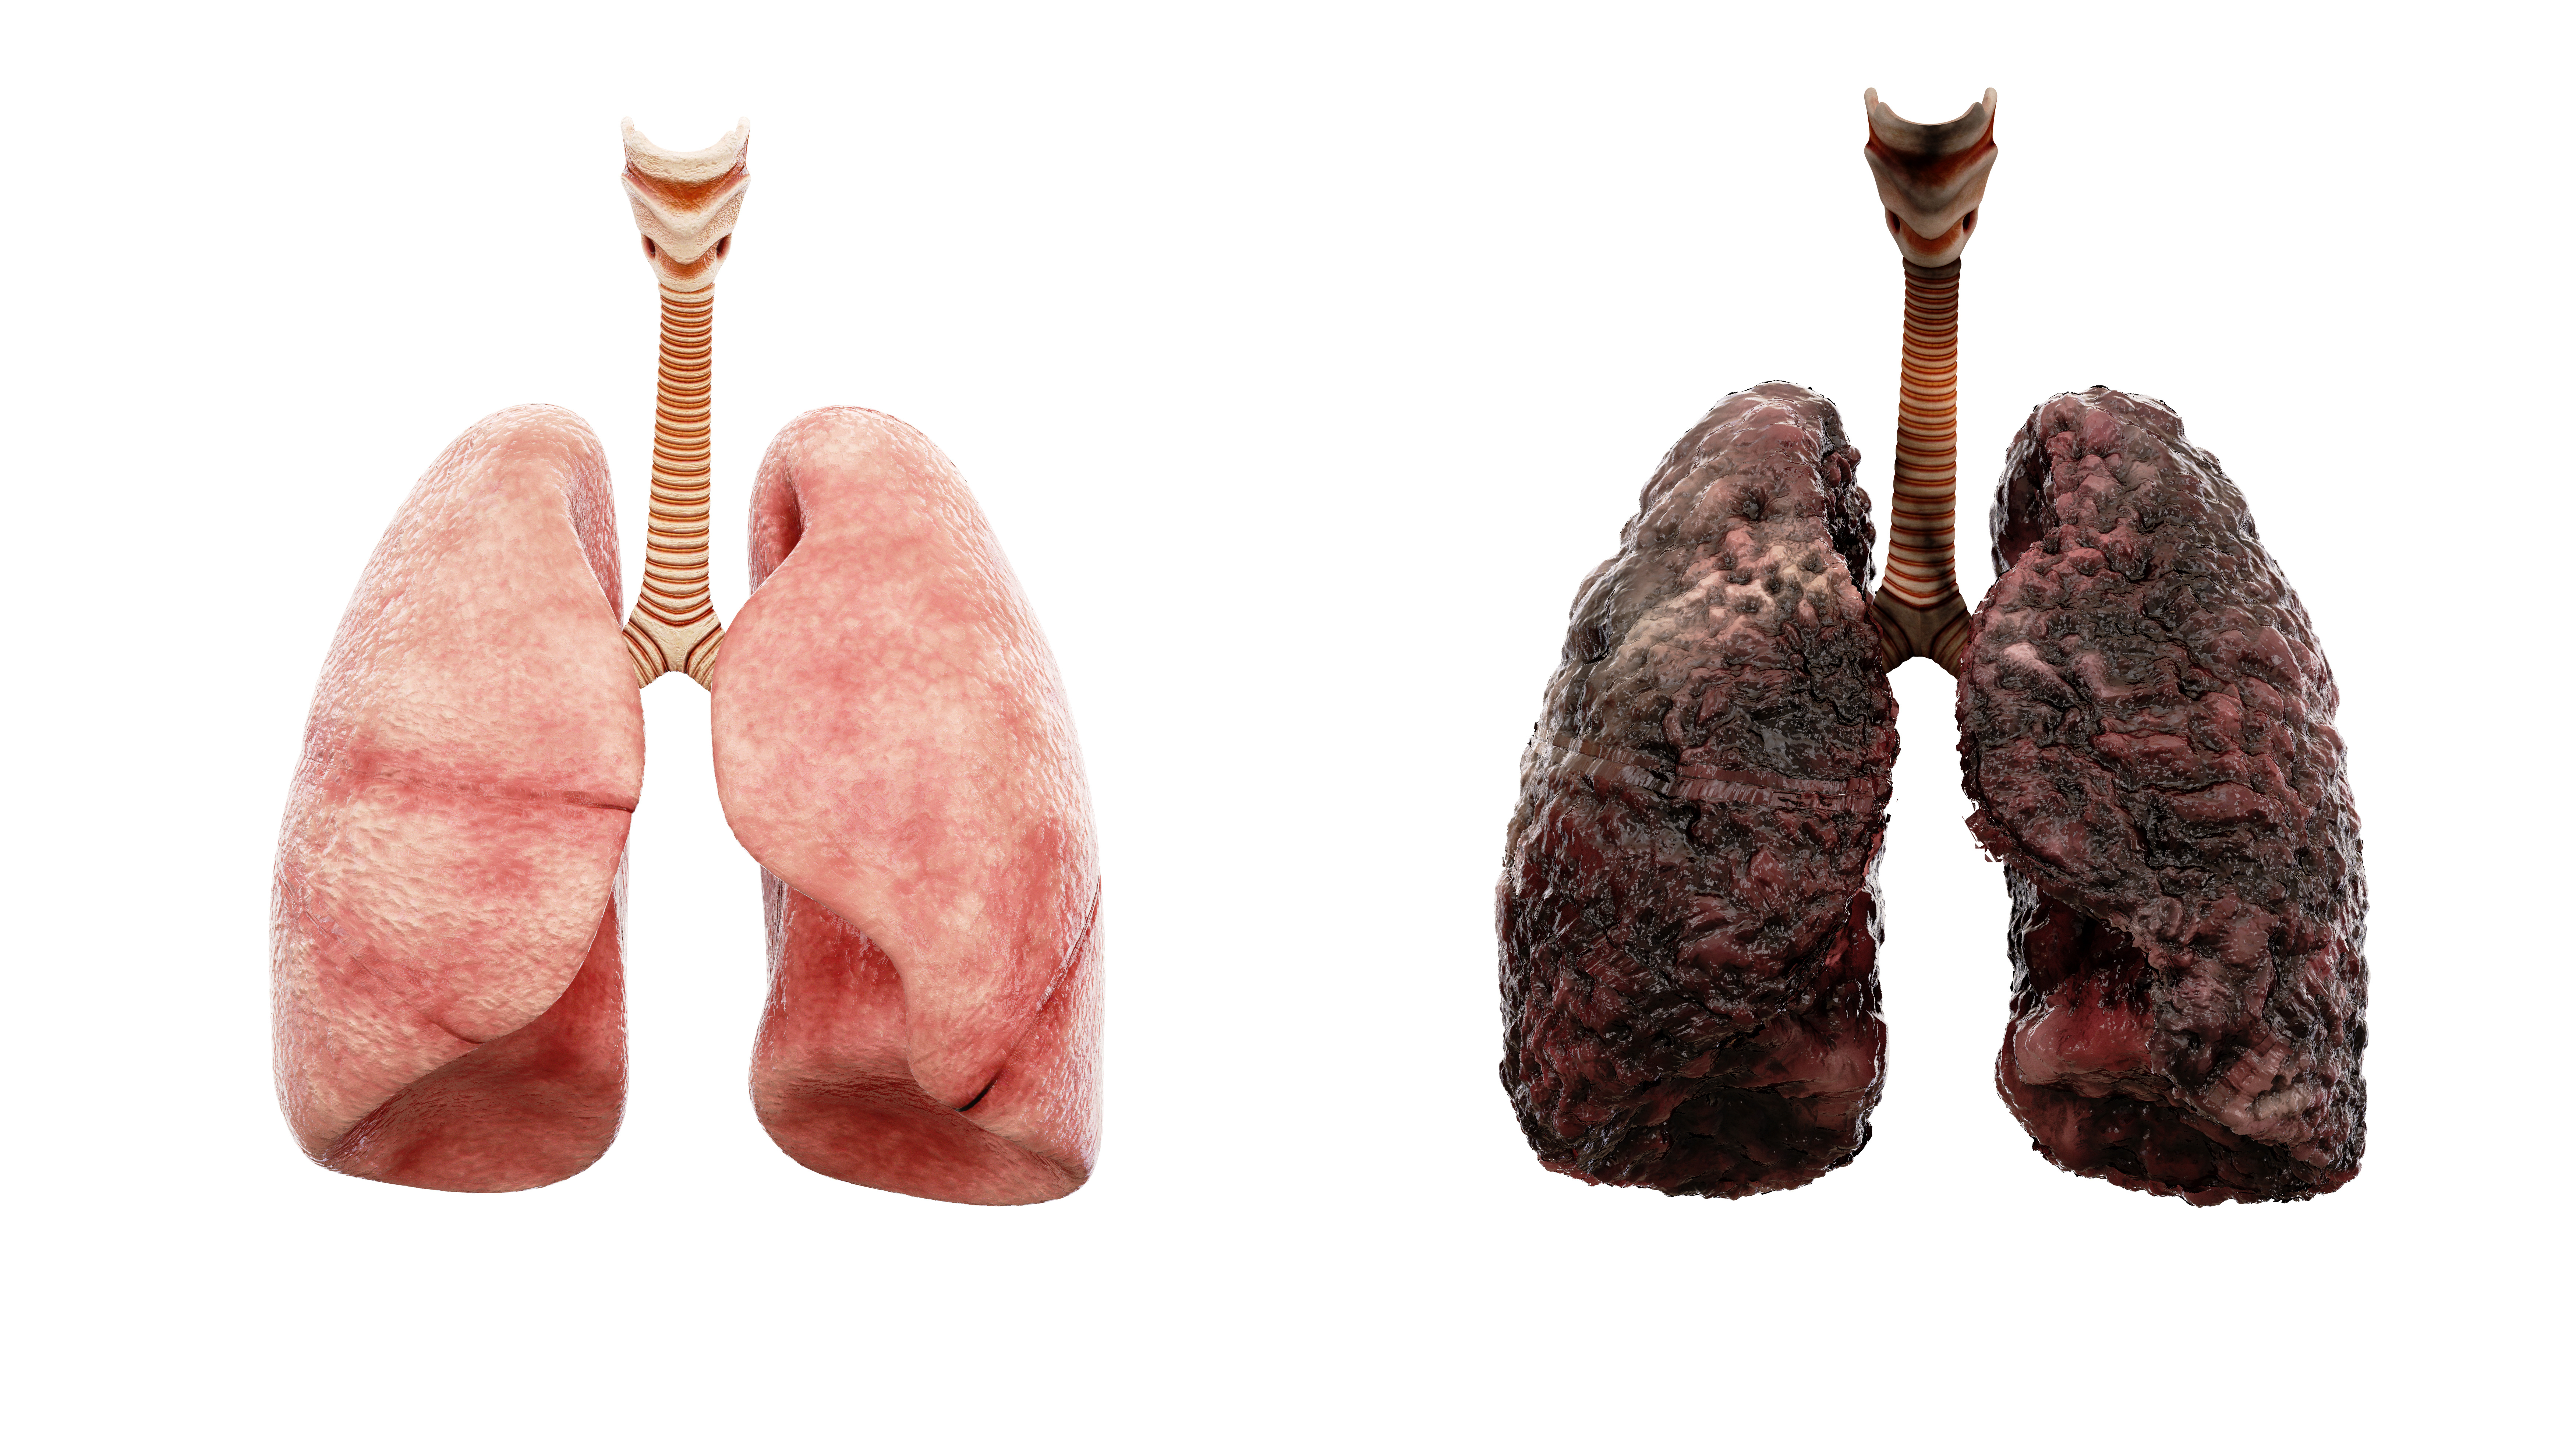 healthy lungs and disease lungs on white isolate. Autopsy medical concept. Cancer and smoking problem